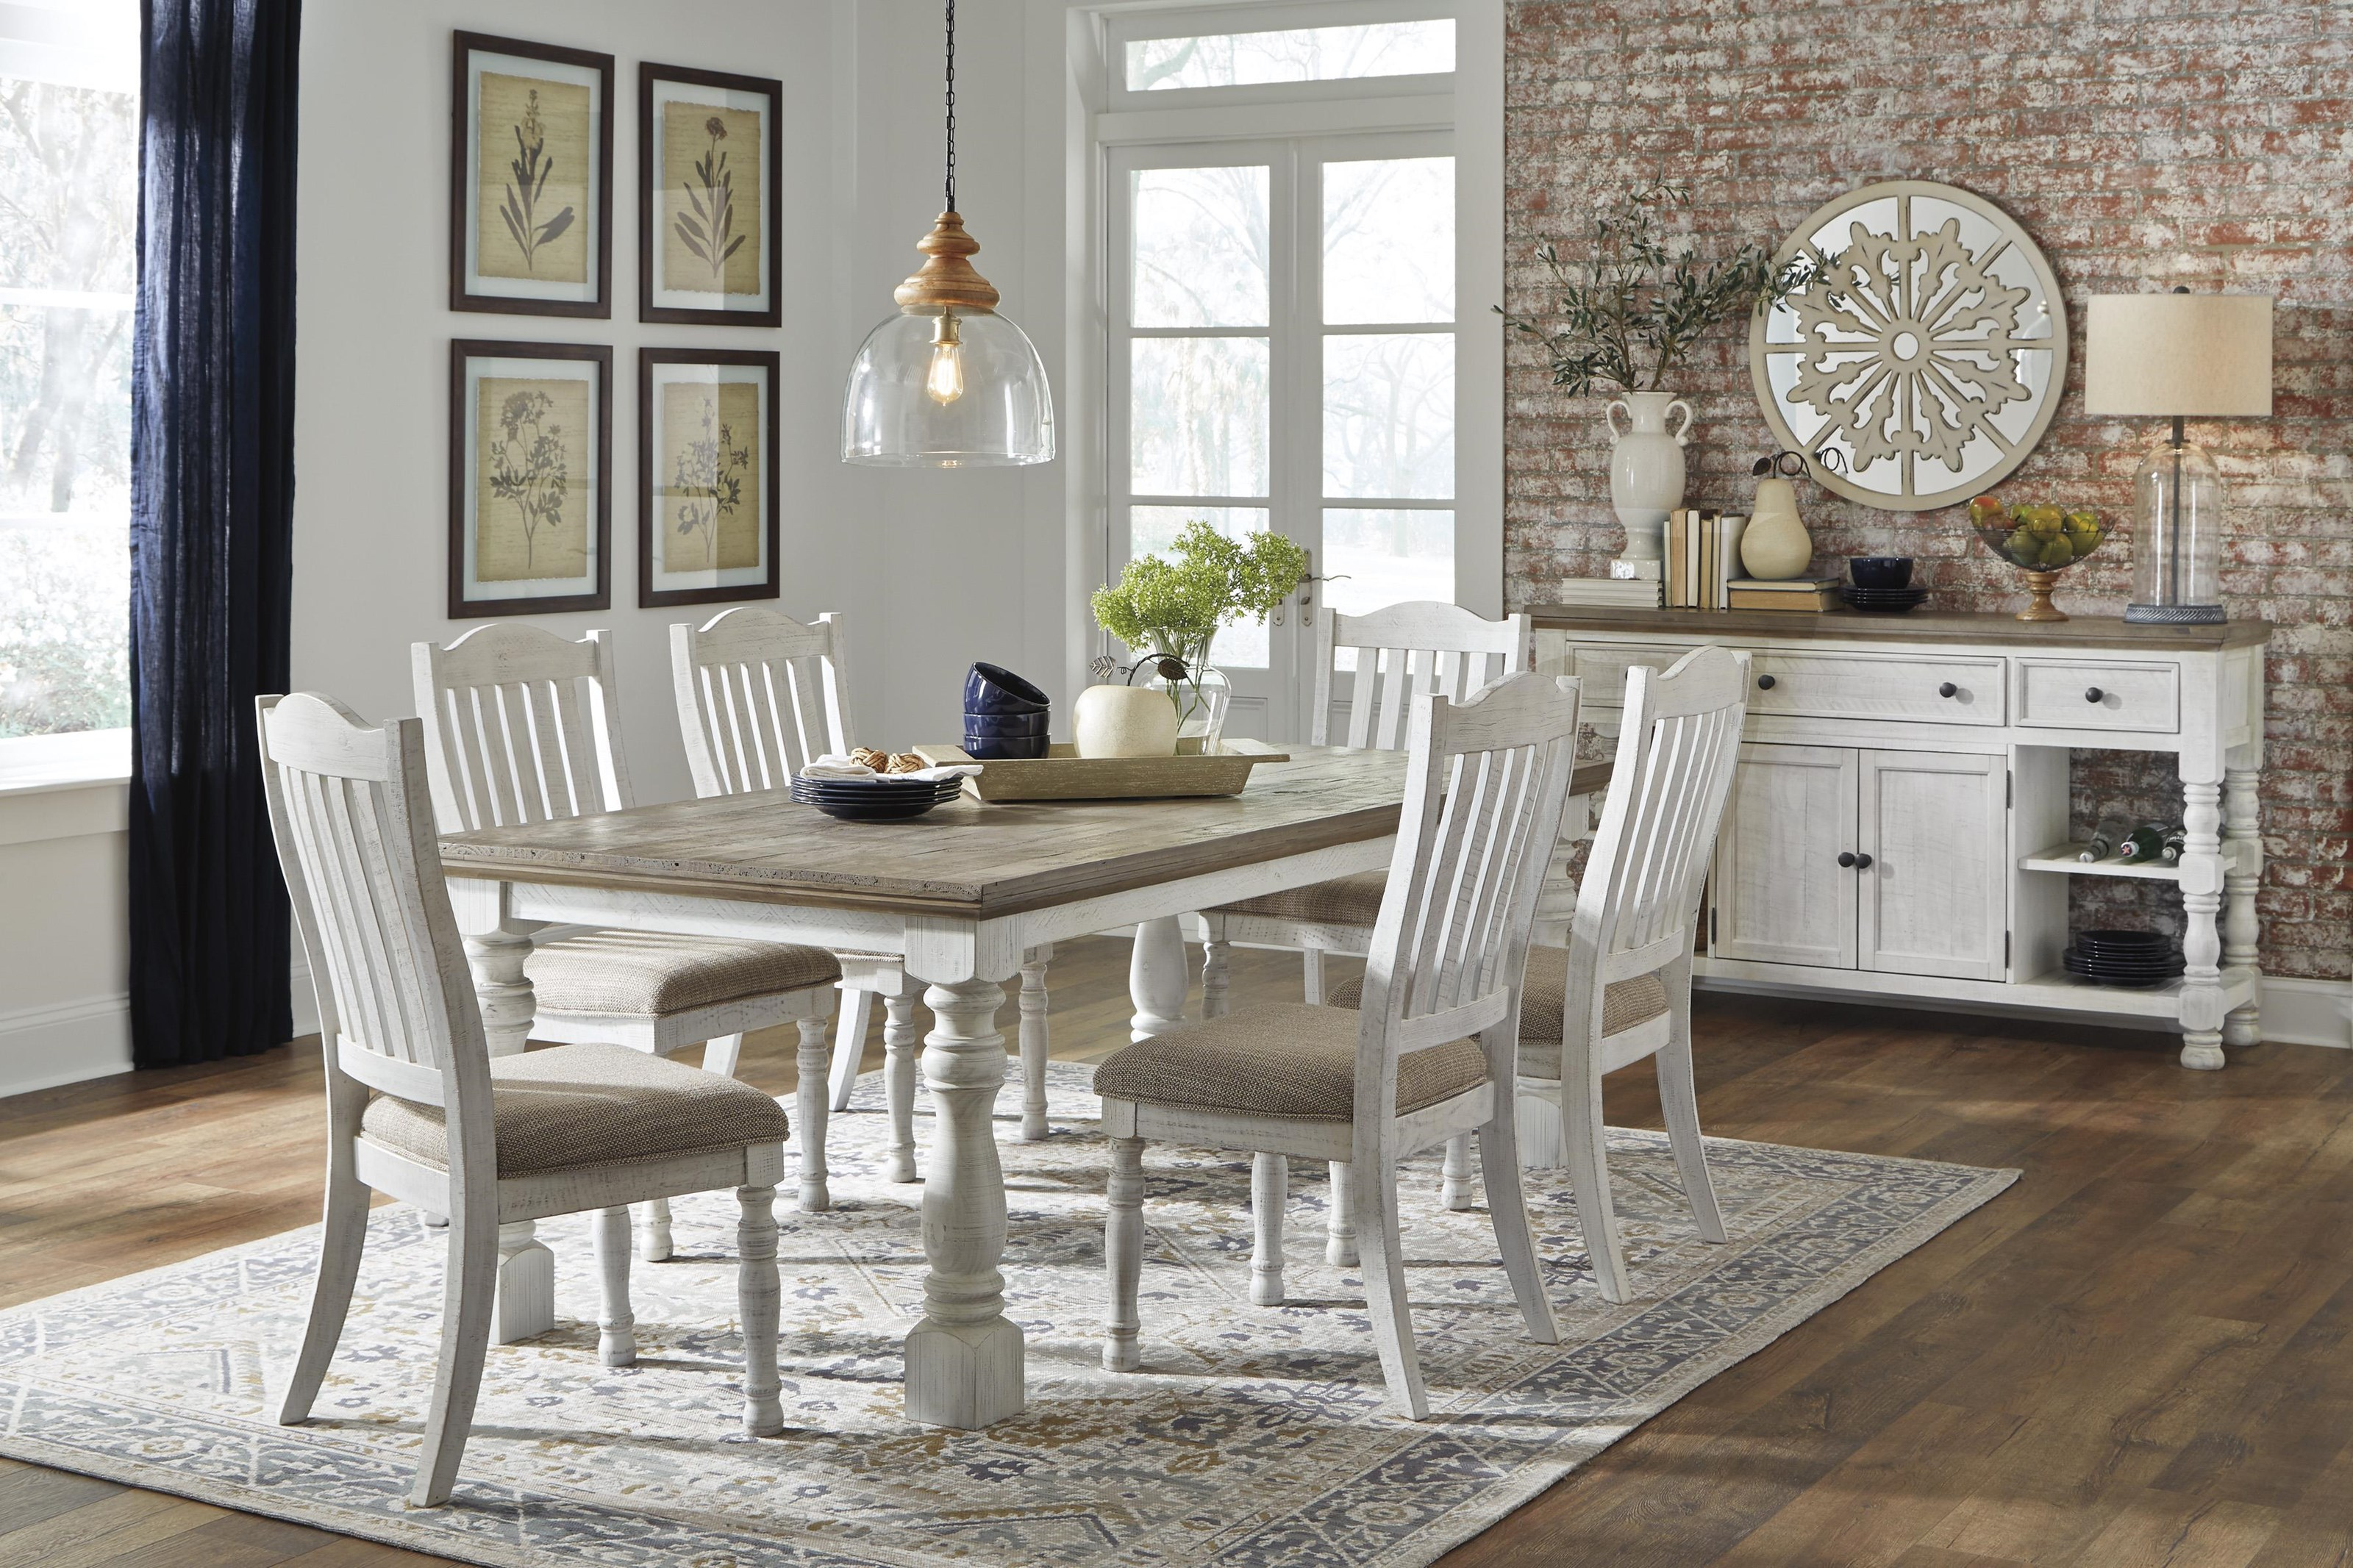 Ashley Havalance Dining Set Includes Table And 4 Chairs Morris Home Dining 5 Piece Sets